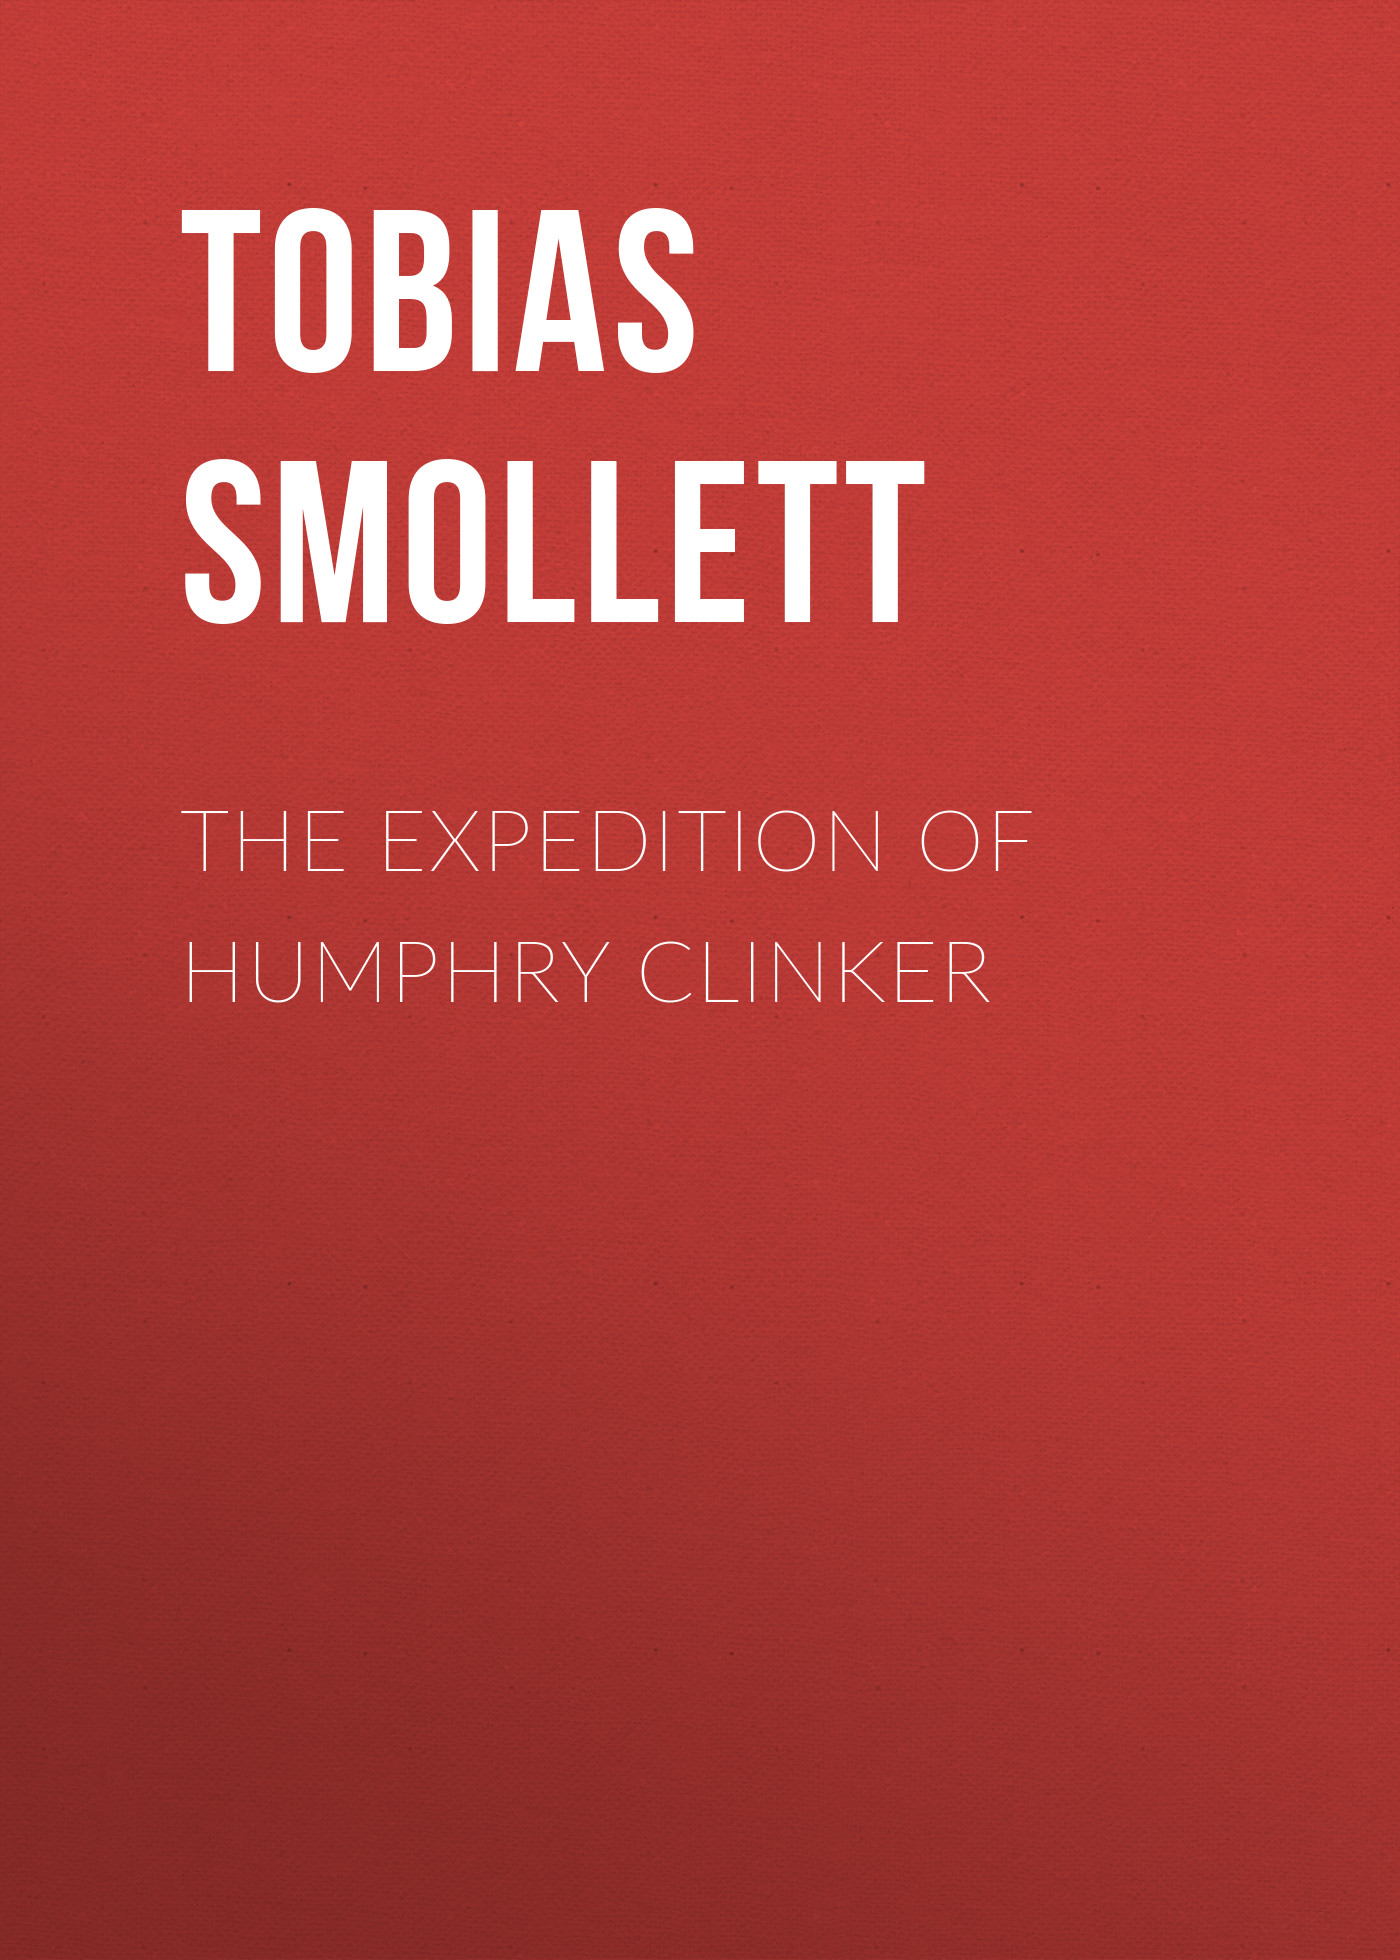 Tobias Smollett The Expedition of Humphry Clinker